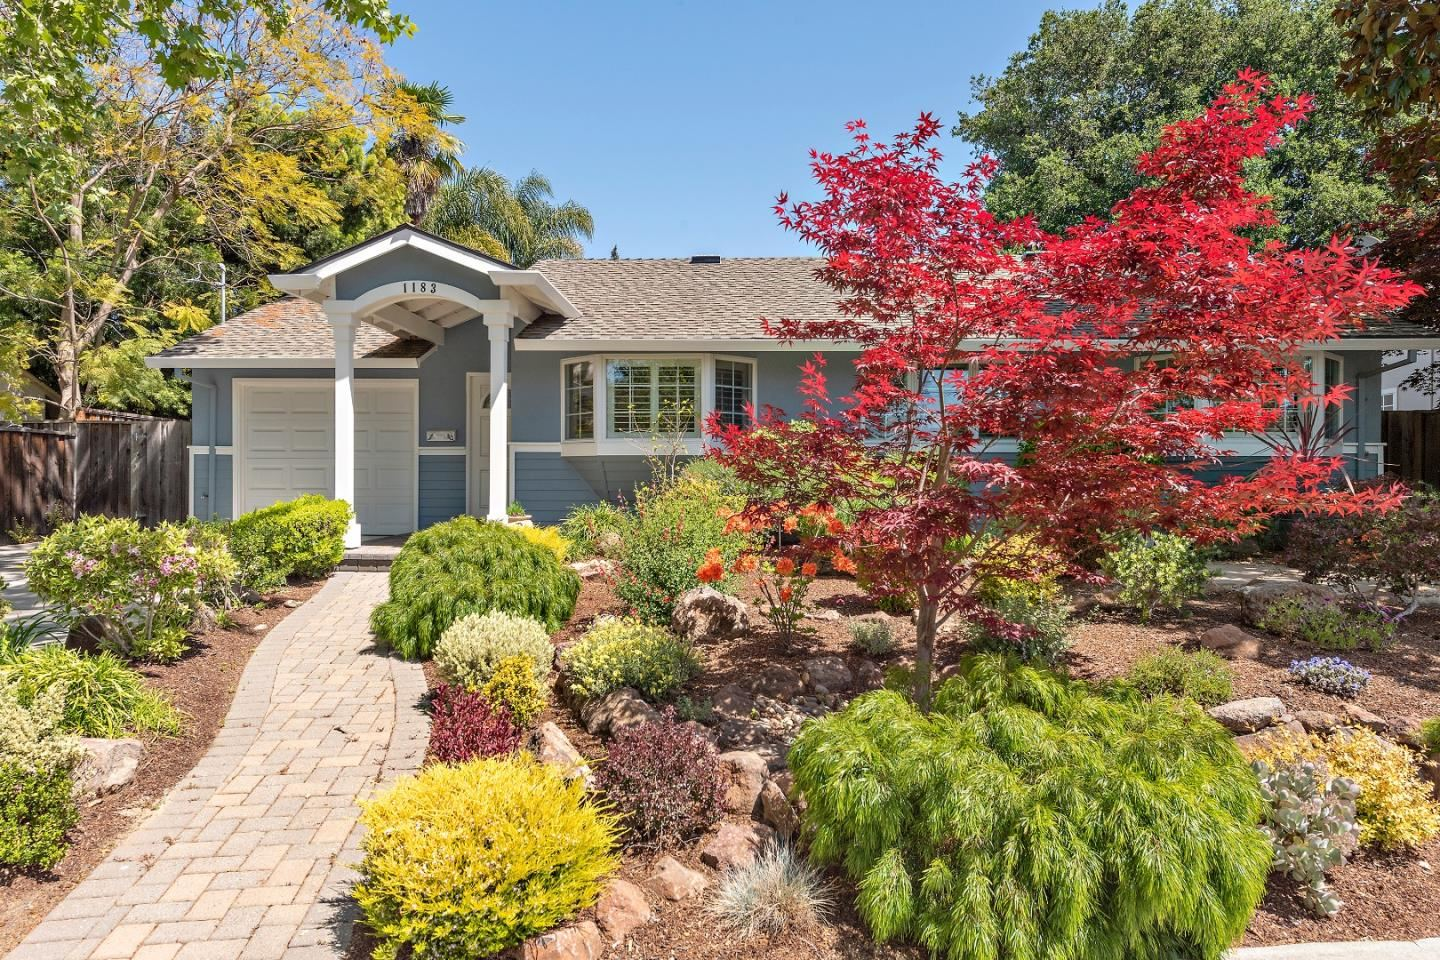 Photo for 1183 Solana Drive, MOUNTAIN VIEW, CA 94040 (MLS # ML81841529)